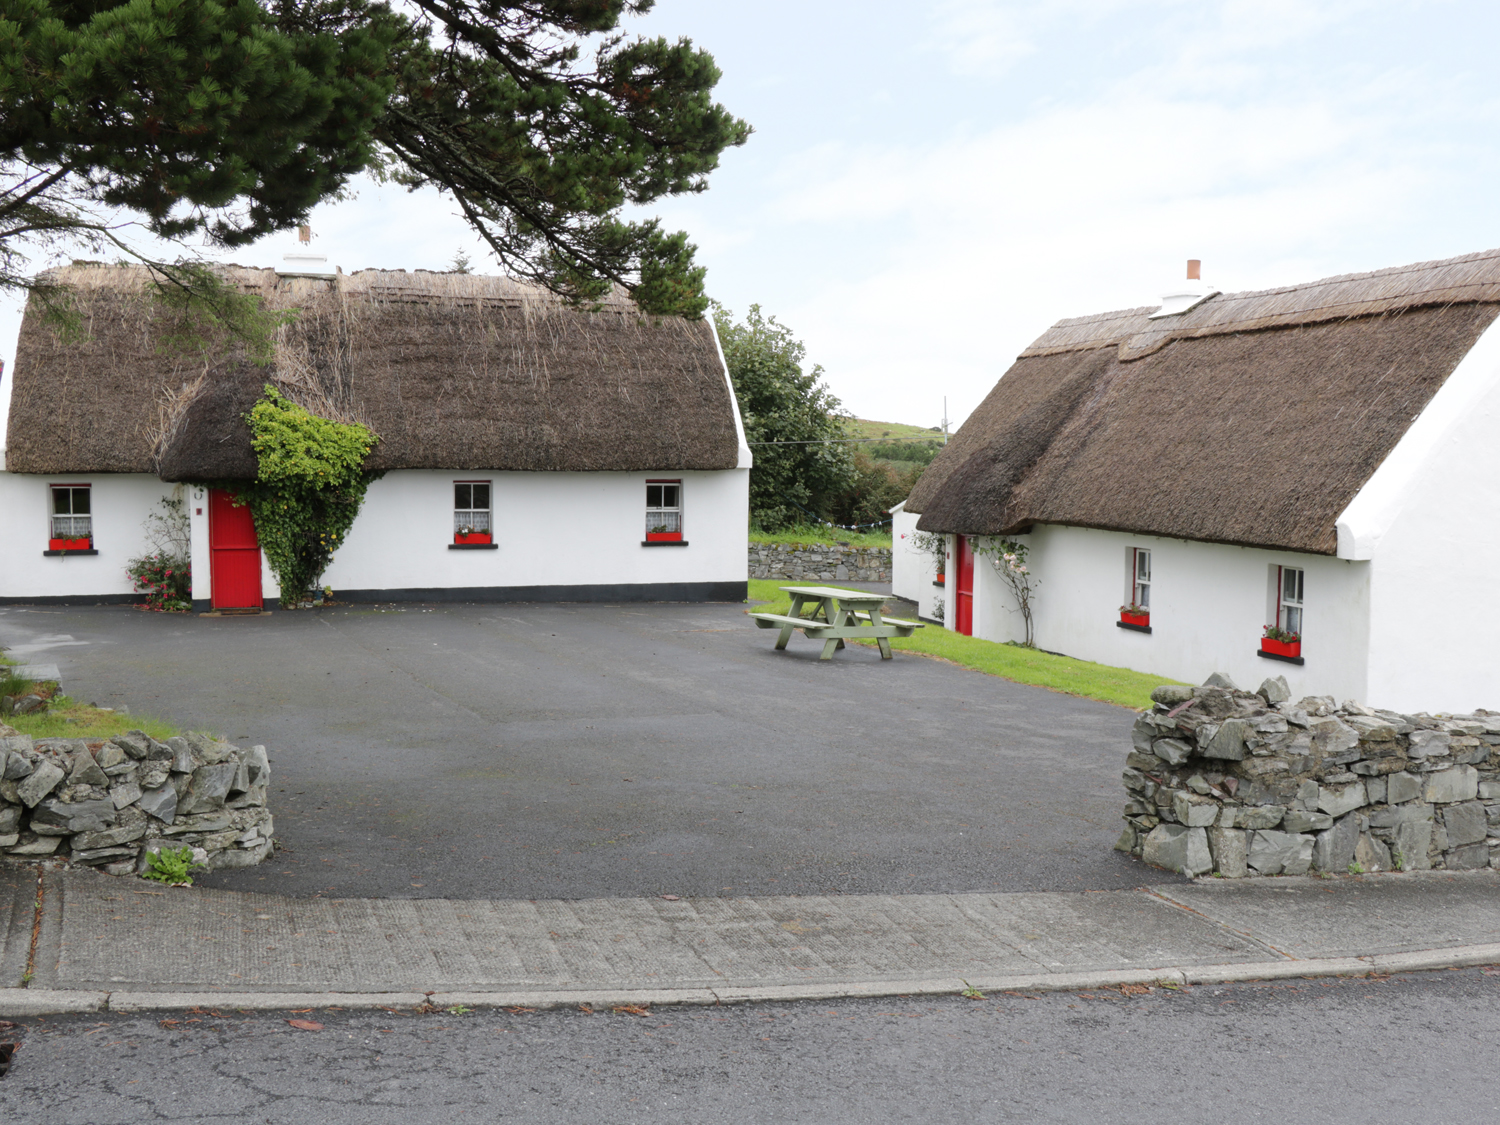 No 8 Renvyle Thatched Cottages